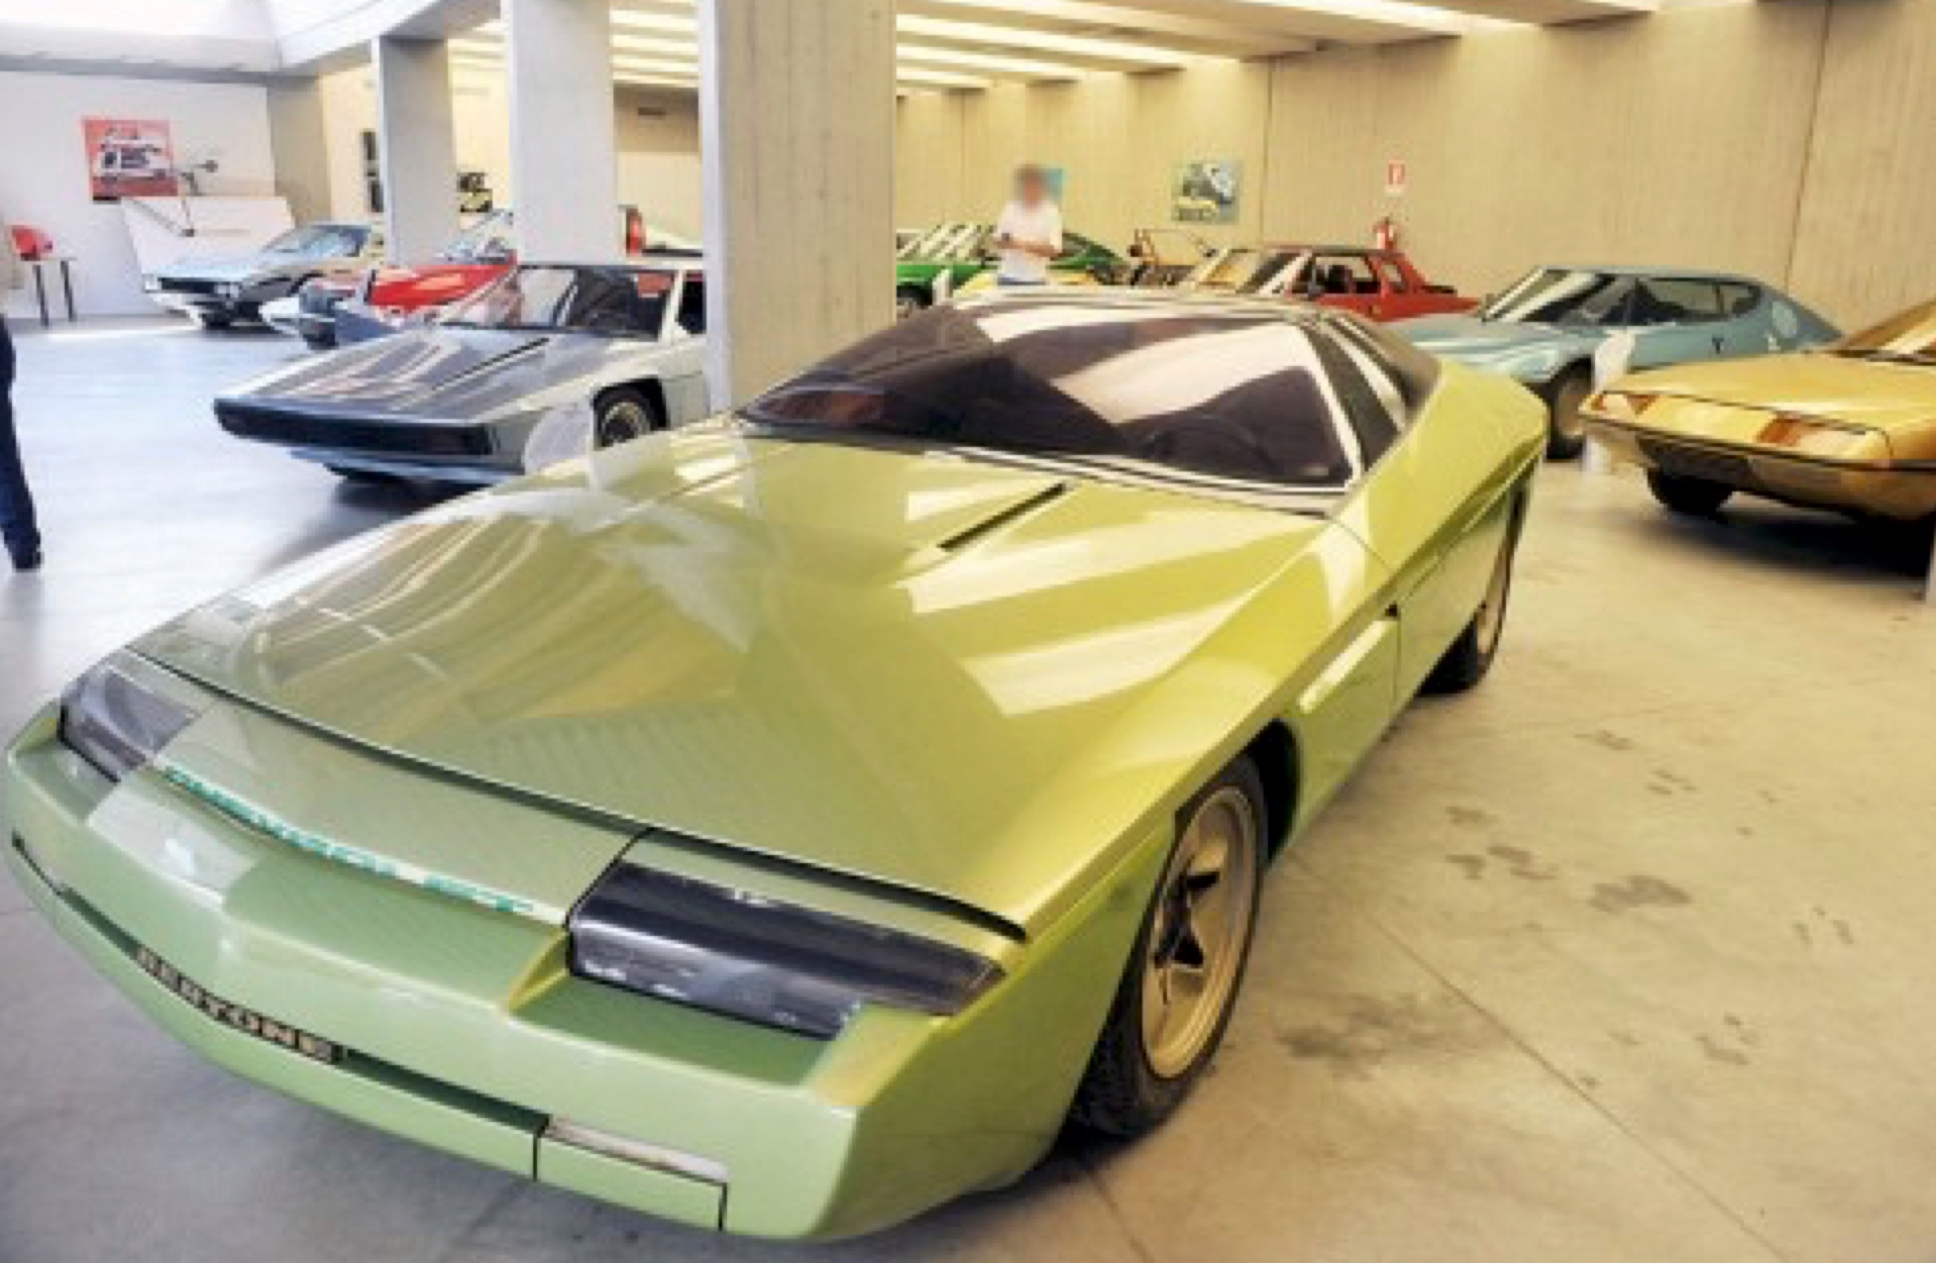 Some of the cars from the Bertone collection going to Italian bankruptcy auction